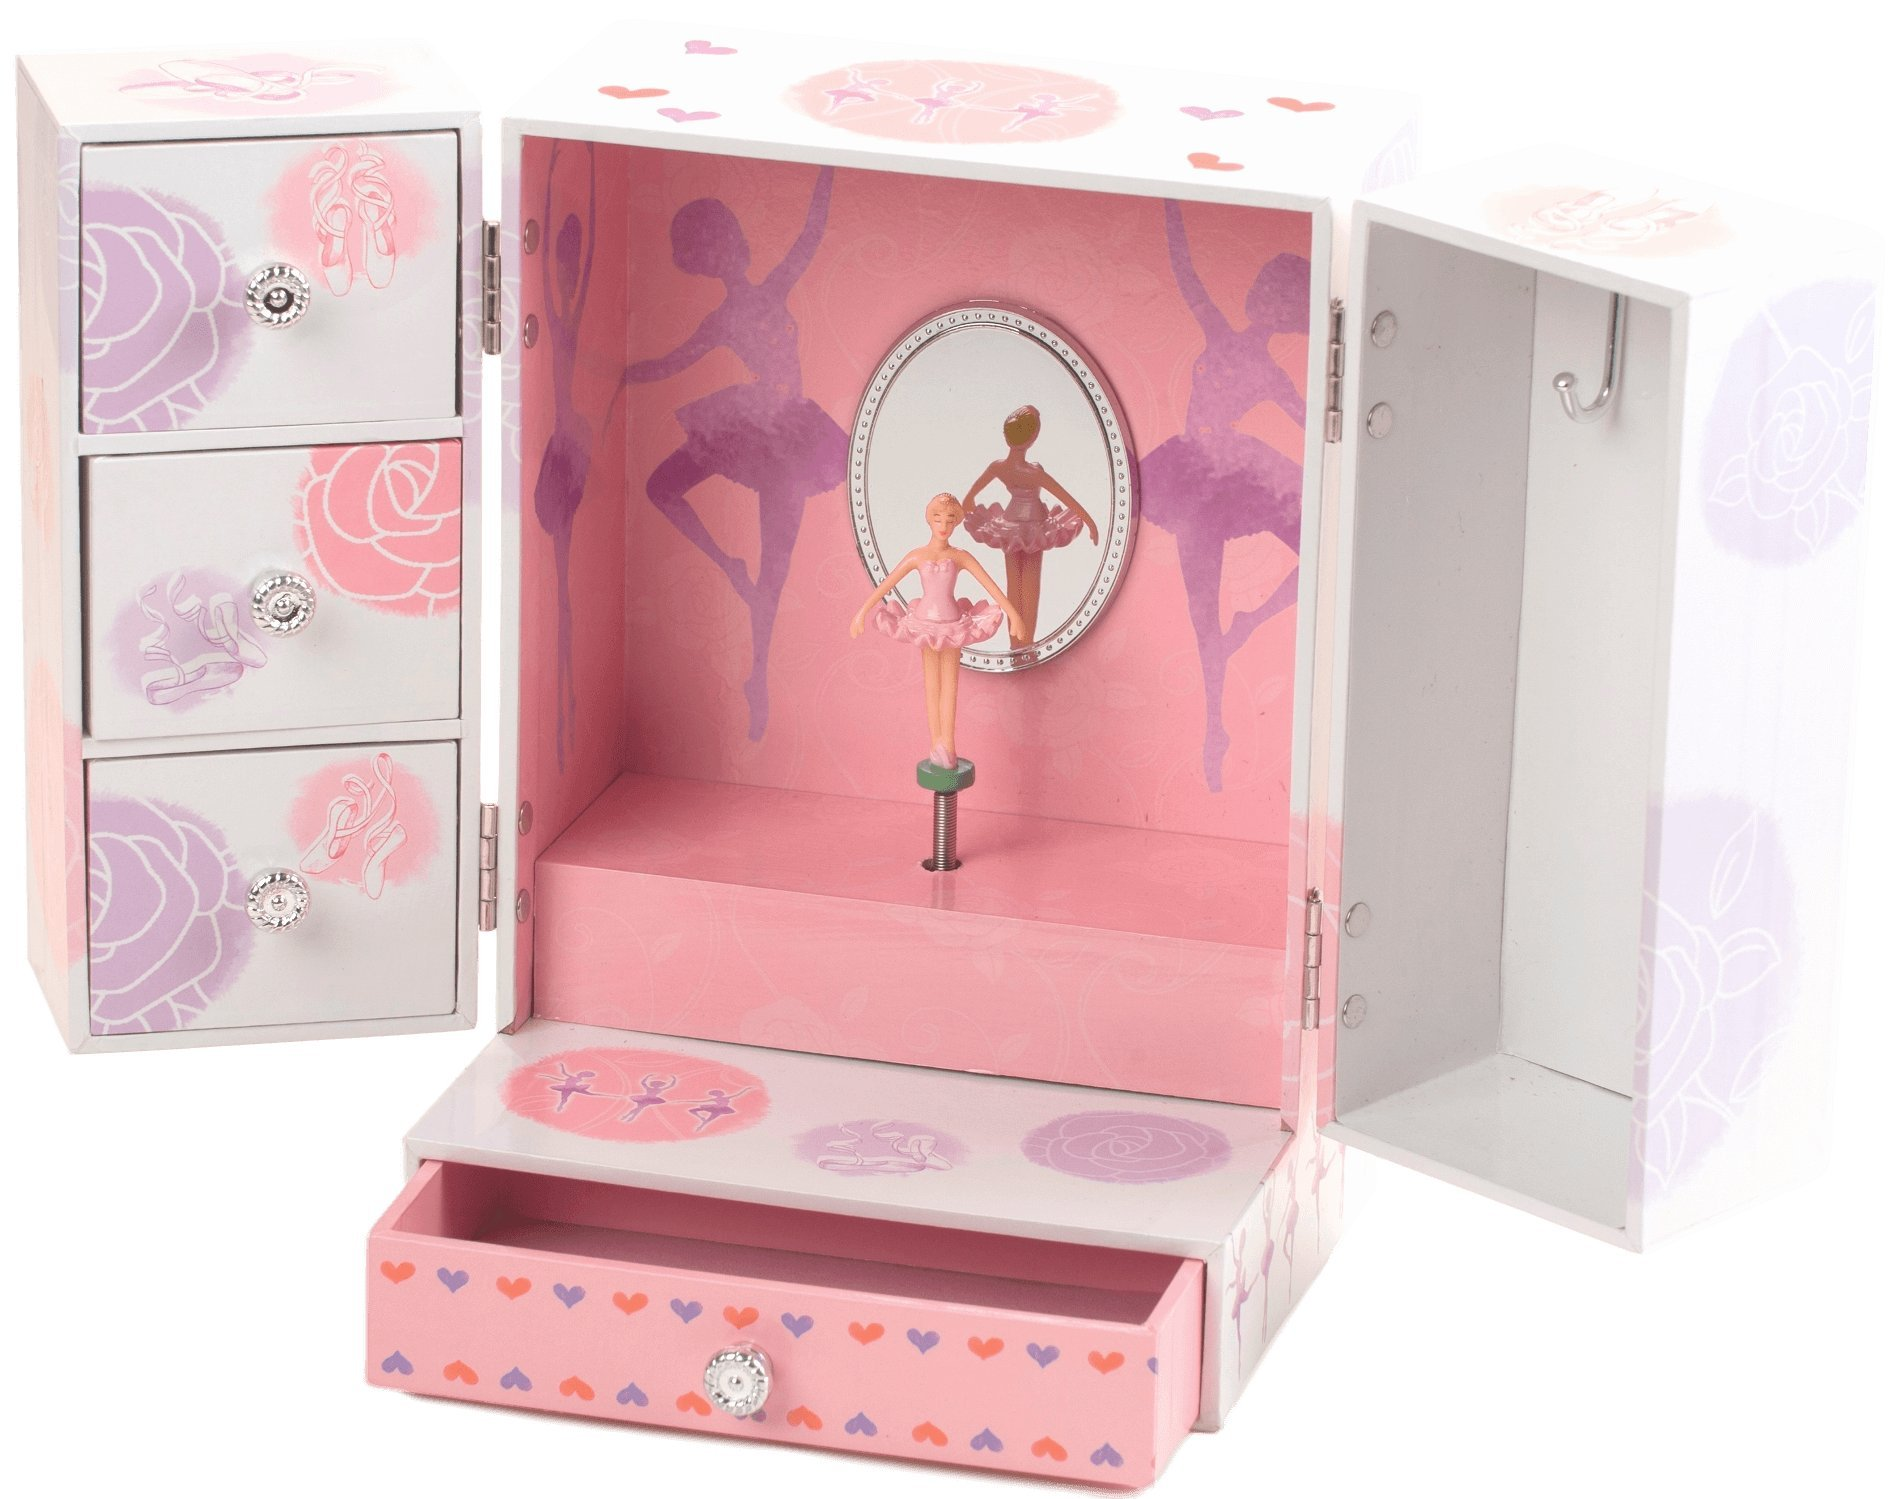 The San Francisco Music Box Company Ballerina Ultra Fancy Box